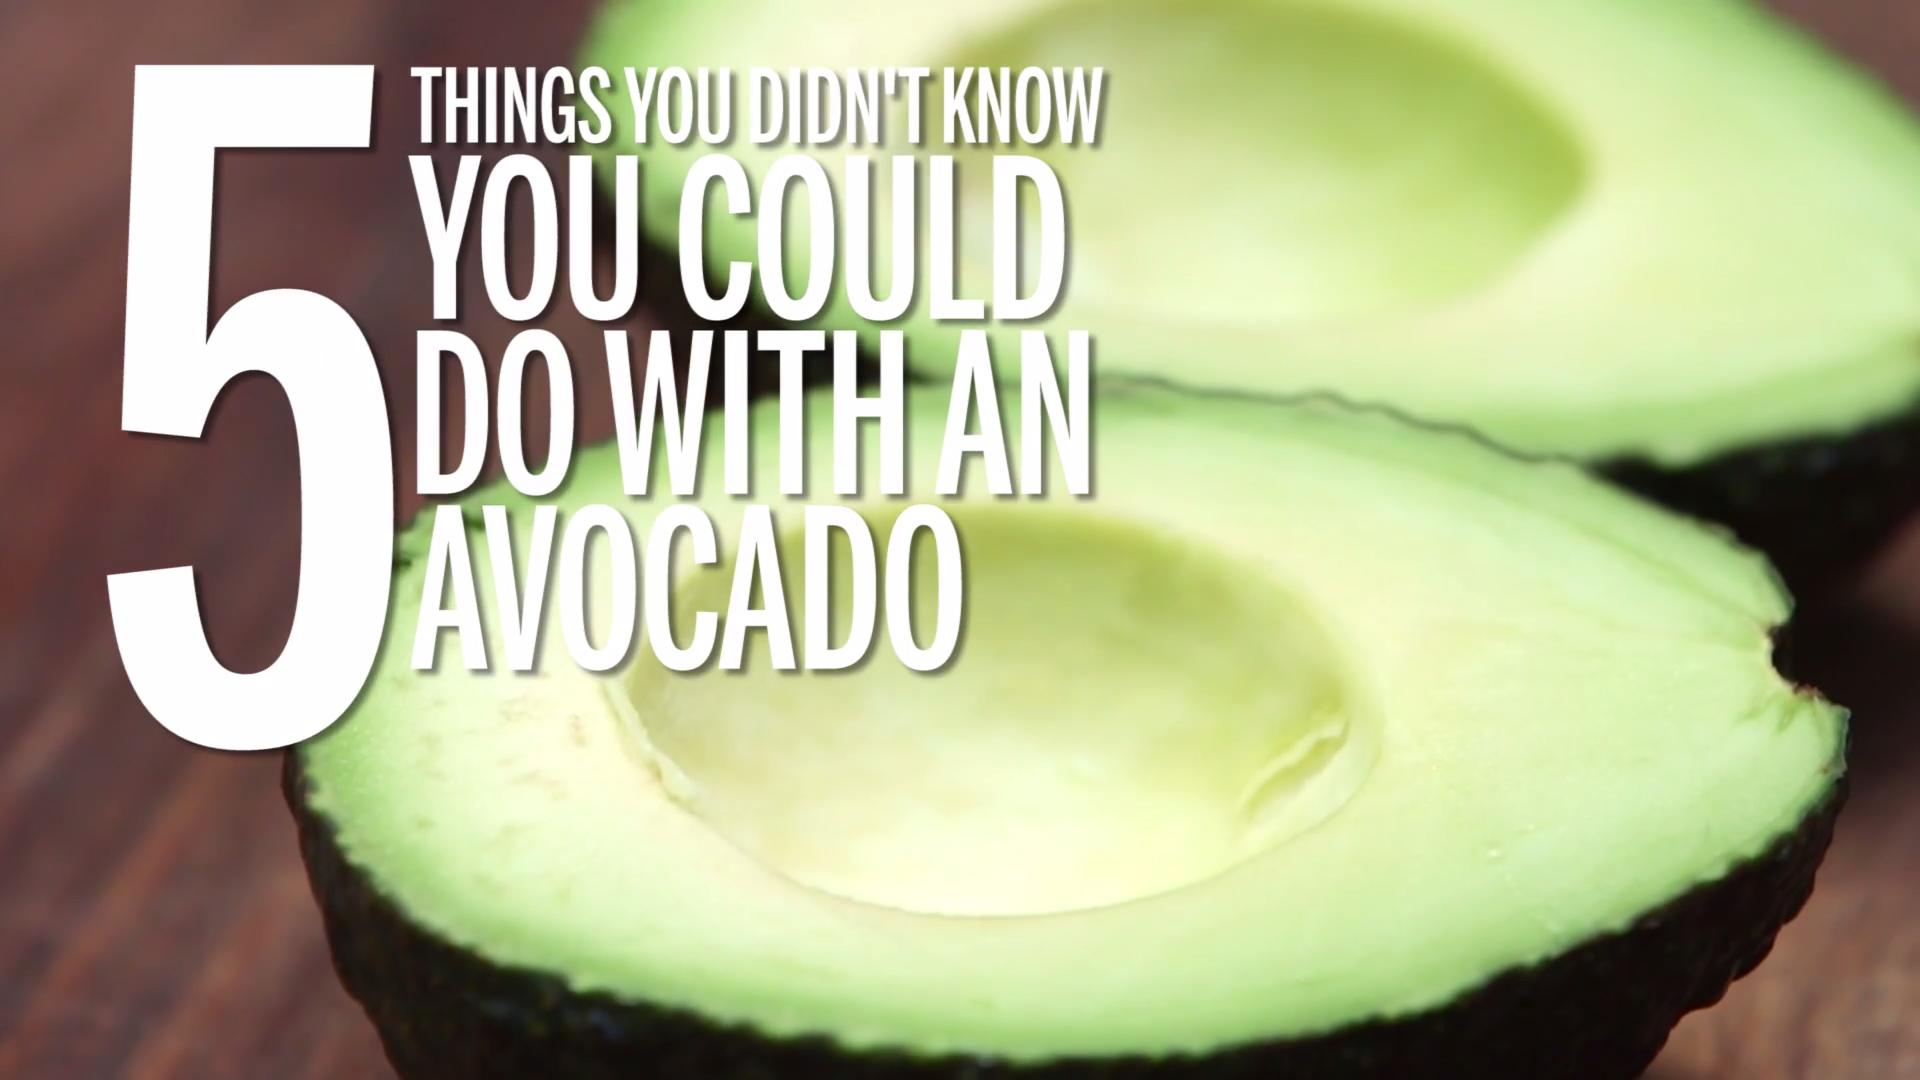 Best fruit: Avocado